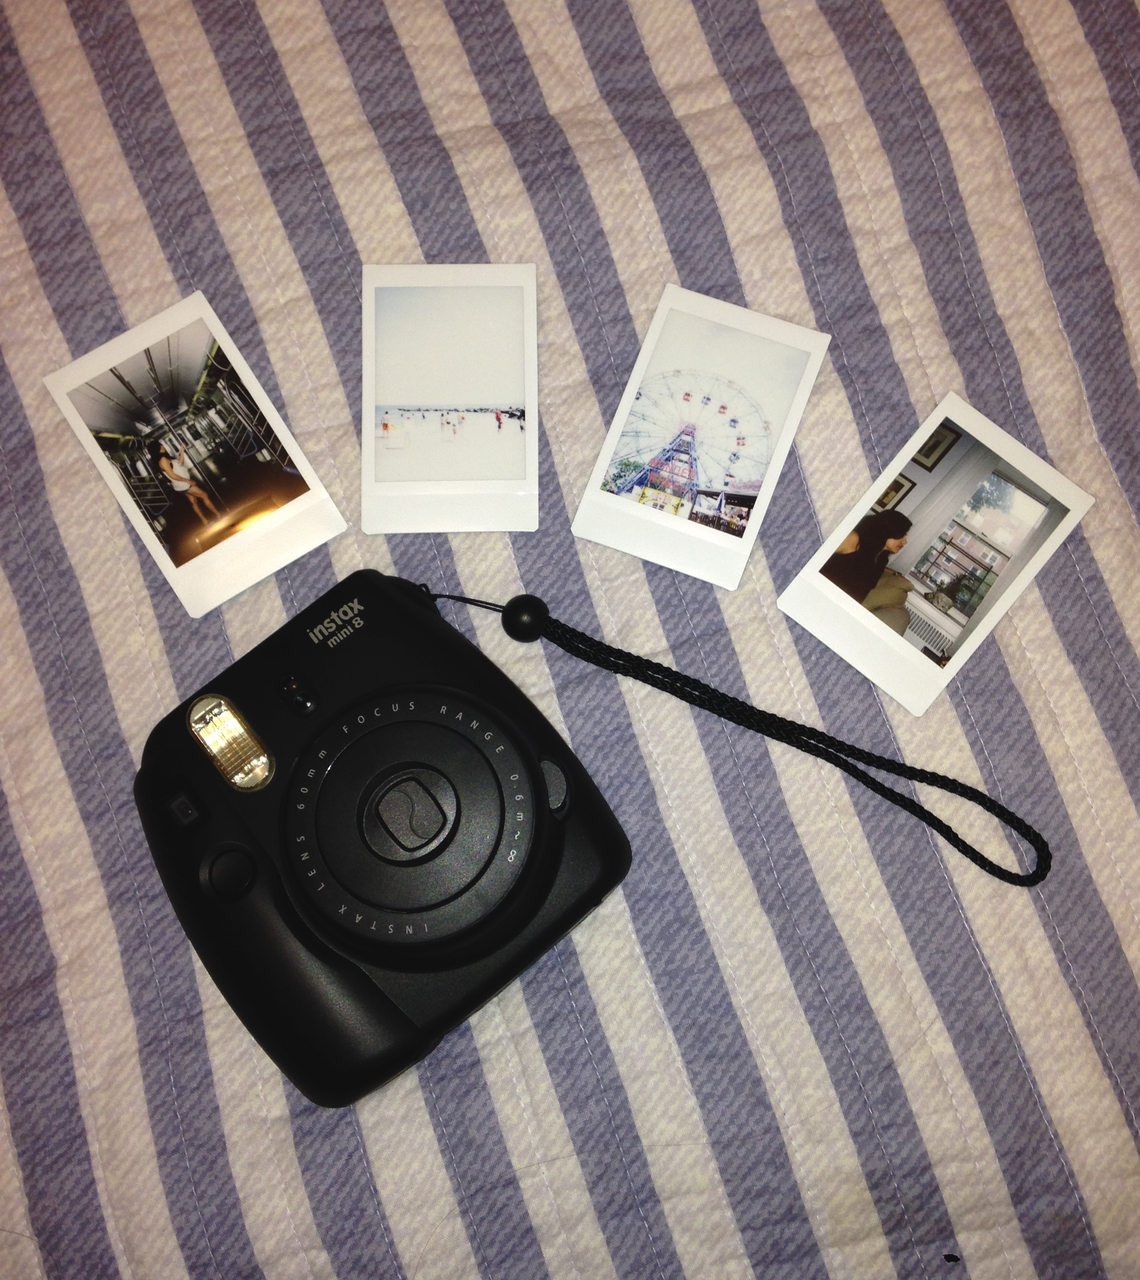 Camera hipster instant camera instax love photo photography retro tumblr vintage mini 8